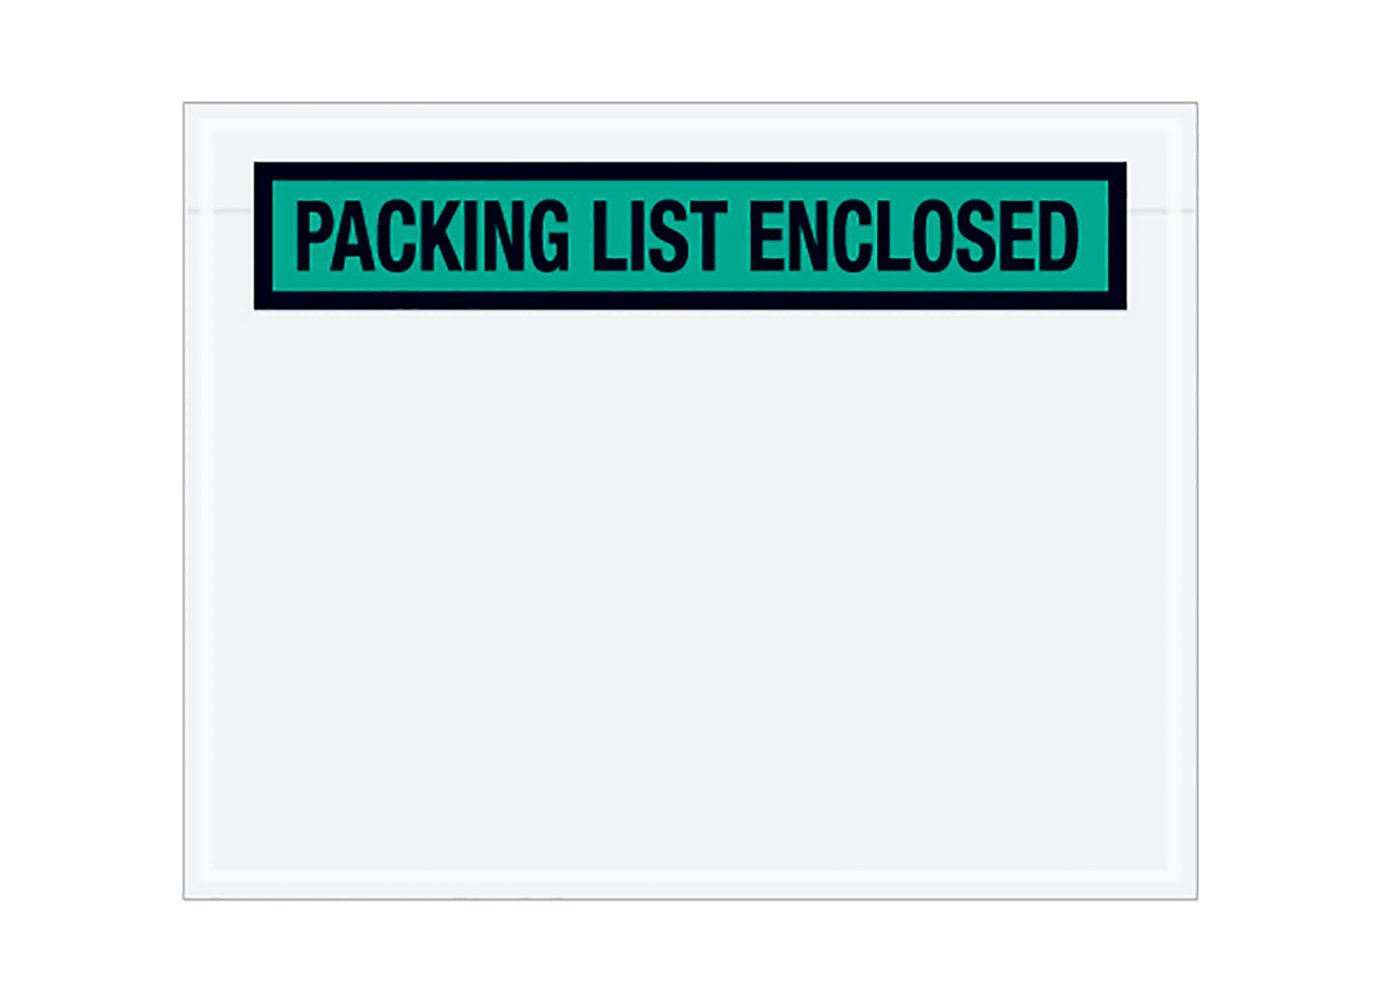 RetailSource E050401NP500 Packing List Enclosed Panel Face Envelopes 5.5 x 4.5 x 1 Green Pack of 500